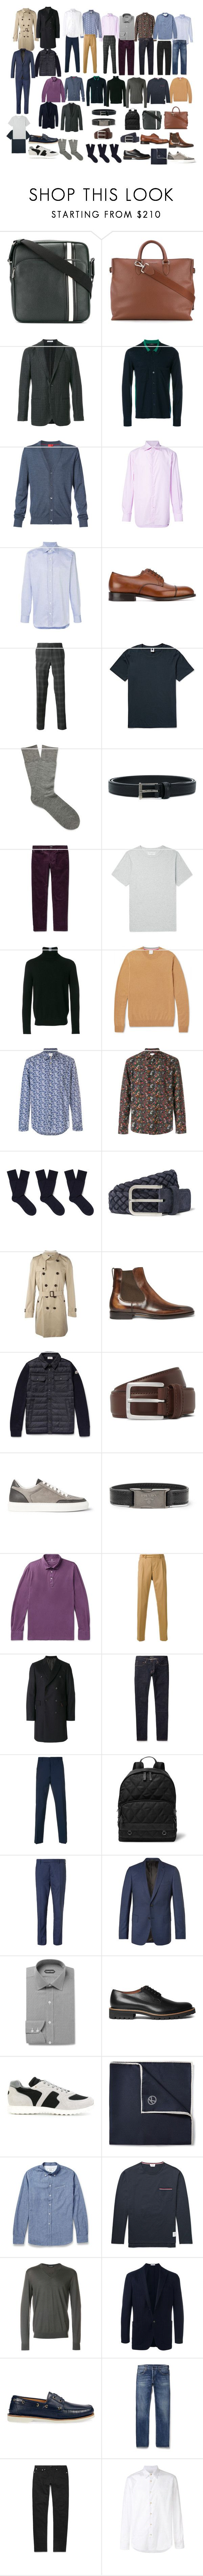 """Базовый мужской гардероб"" by alex9668 on Polyvore featuring Bally, Orciani, Boglioli, Joseph, Isaia, Brioni, Church's, Fashion Clinic, Yves Saint Laurent и Officine Générale"